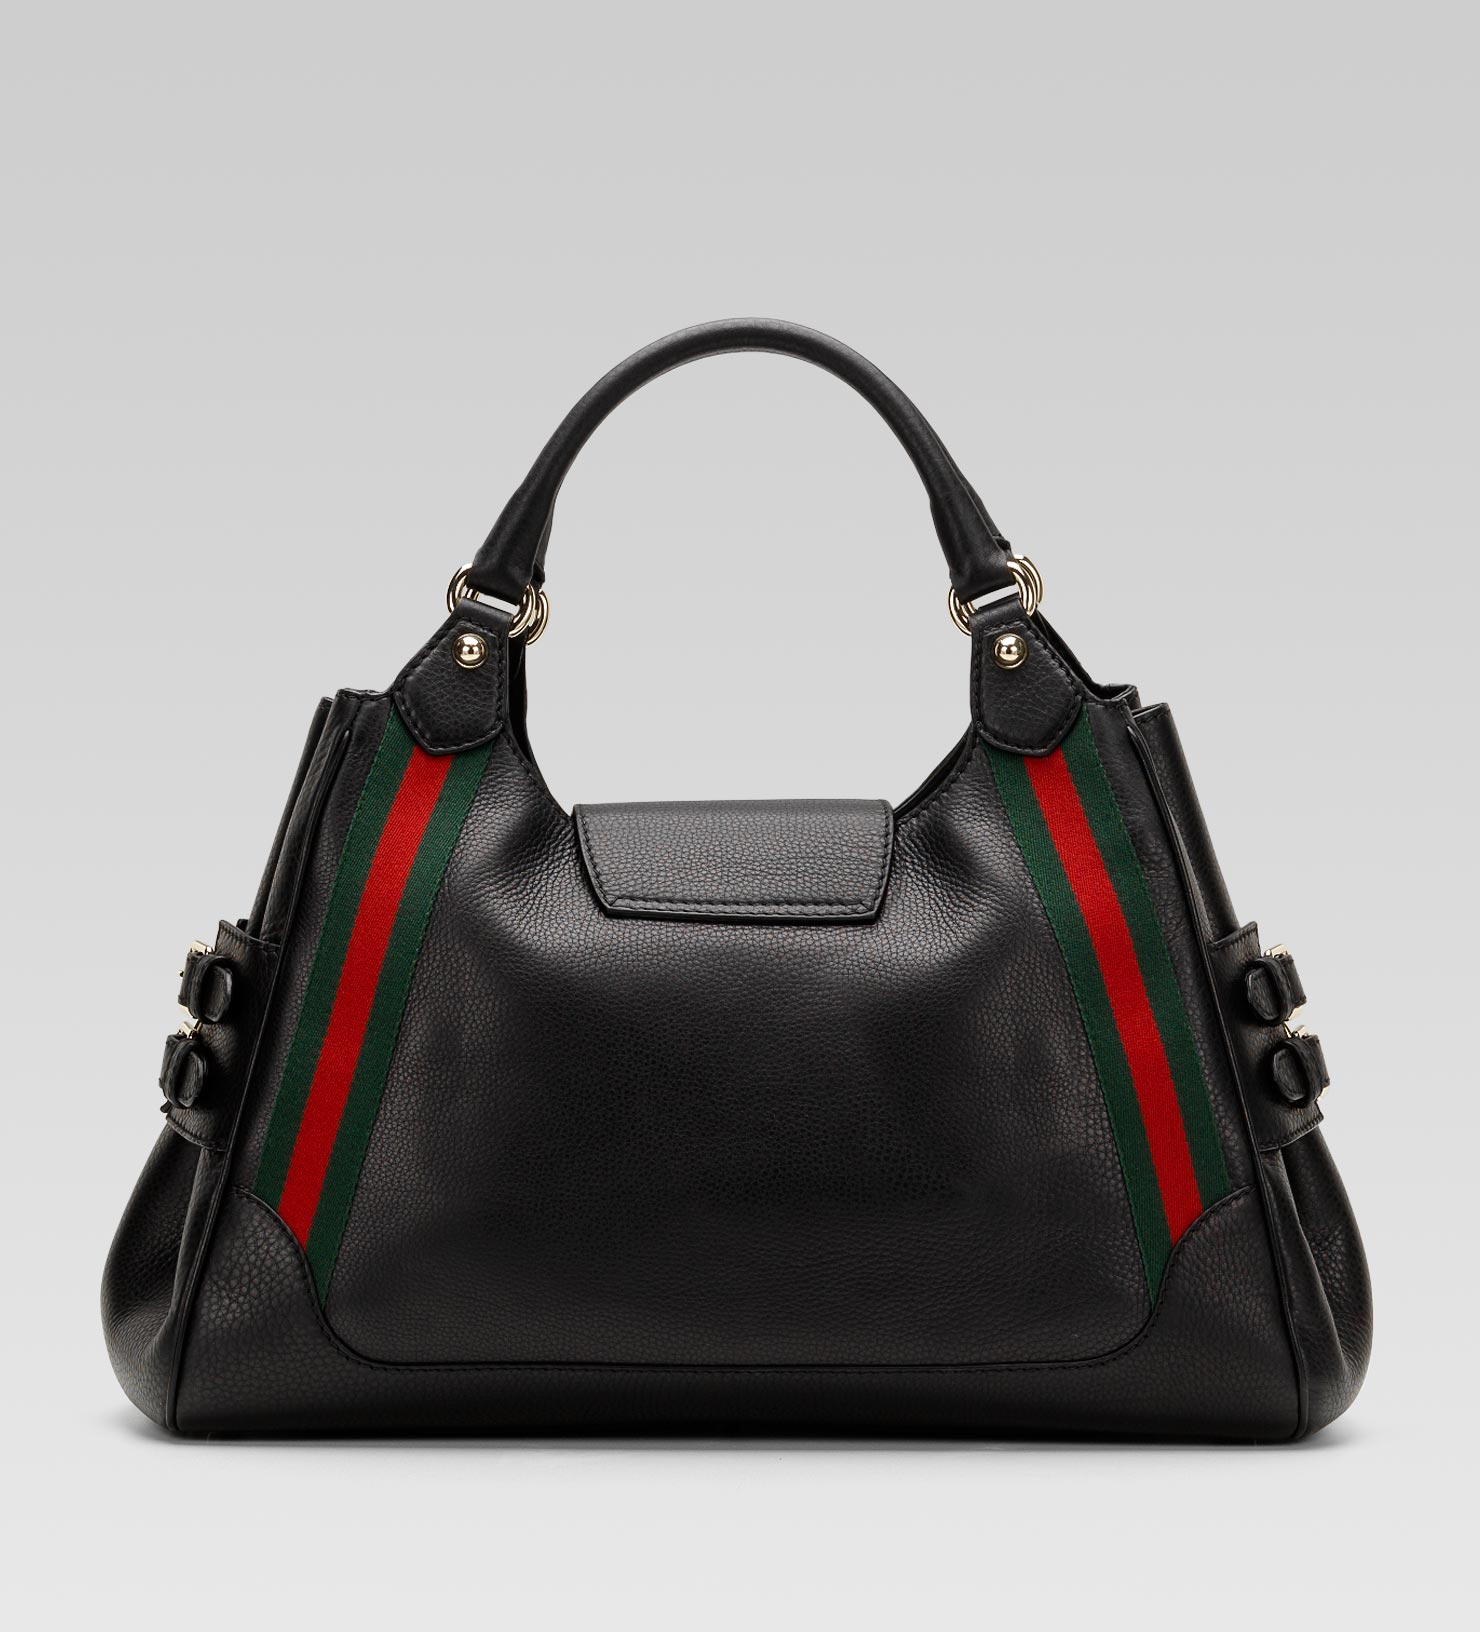 46406-shop-gucci-outlet-online-store-72-off-gucci-factory-outlet.jpg